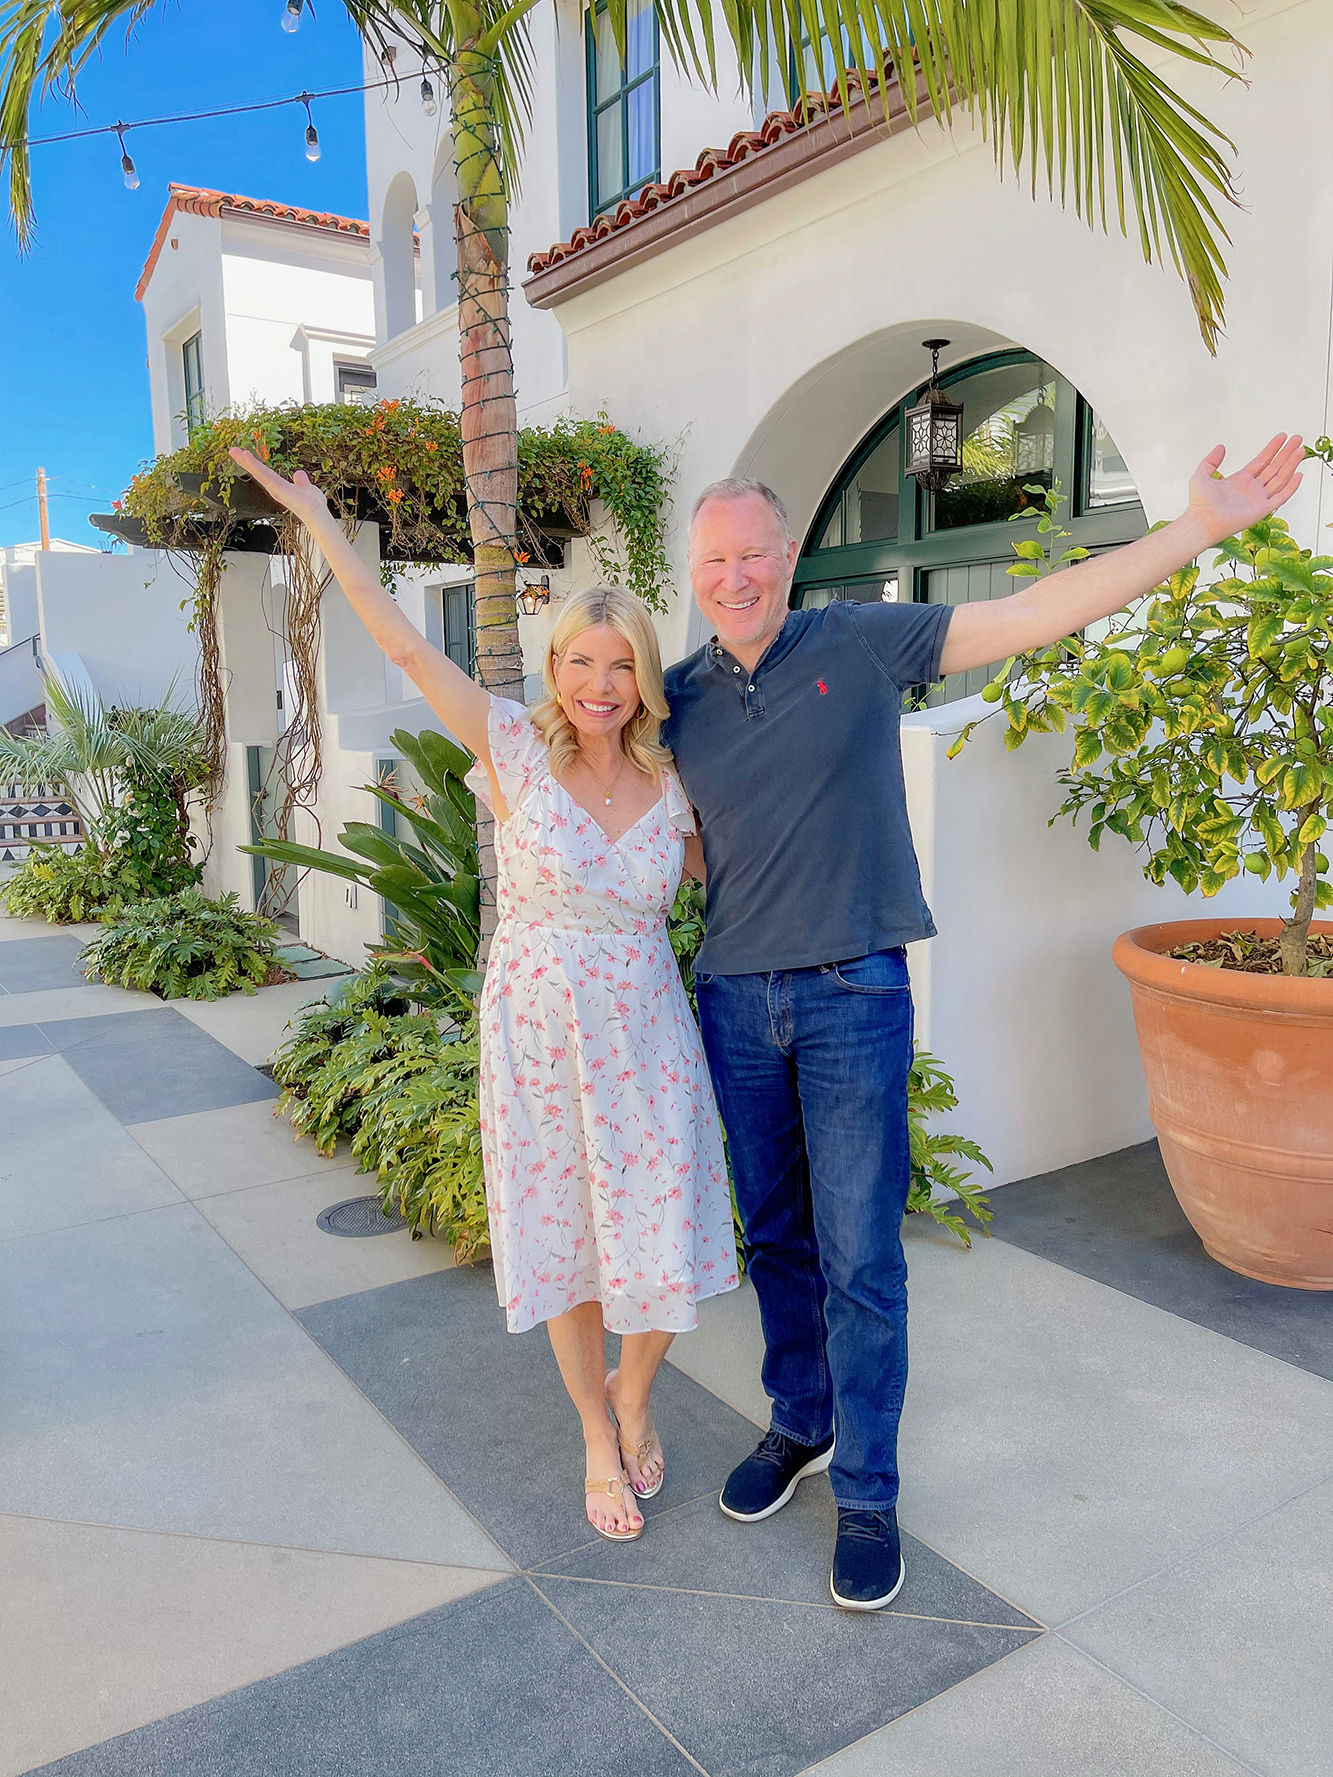 We're moving to Santa Barbara! So exciting and I know this is a shock - but our home has sold and it's pending. We have had a blast.